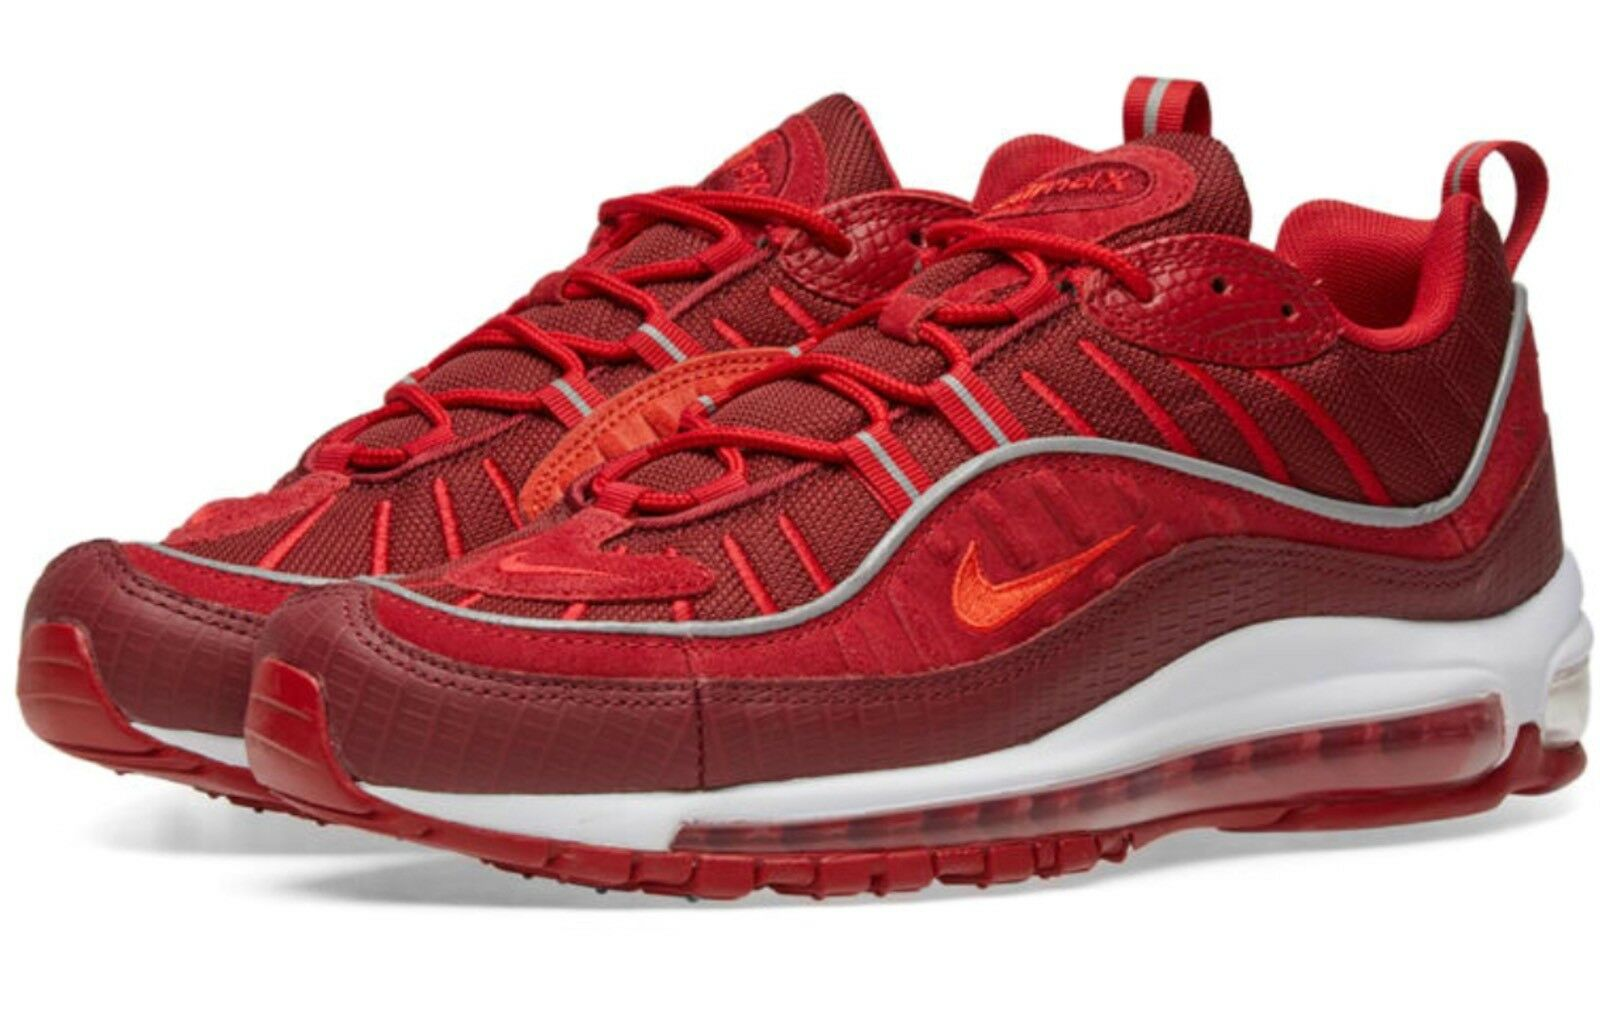 DS MENS NIKE AIR MAX 98 SE TRIPLE RED RUNNING SHOES AO9380 600 SZ 9.5 FREE